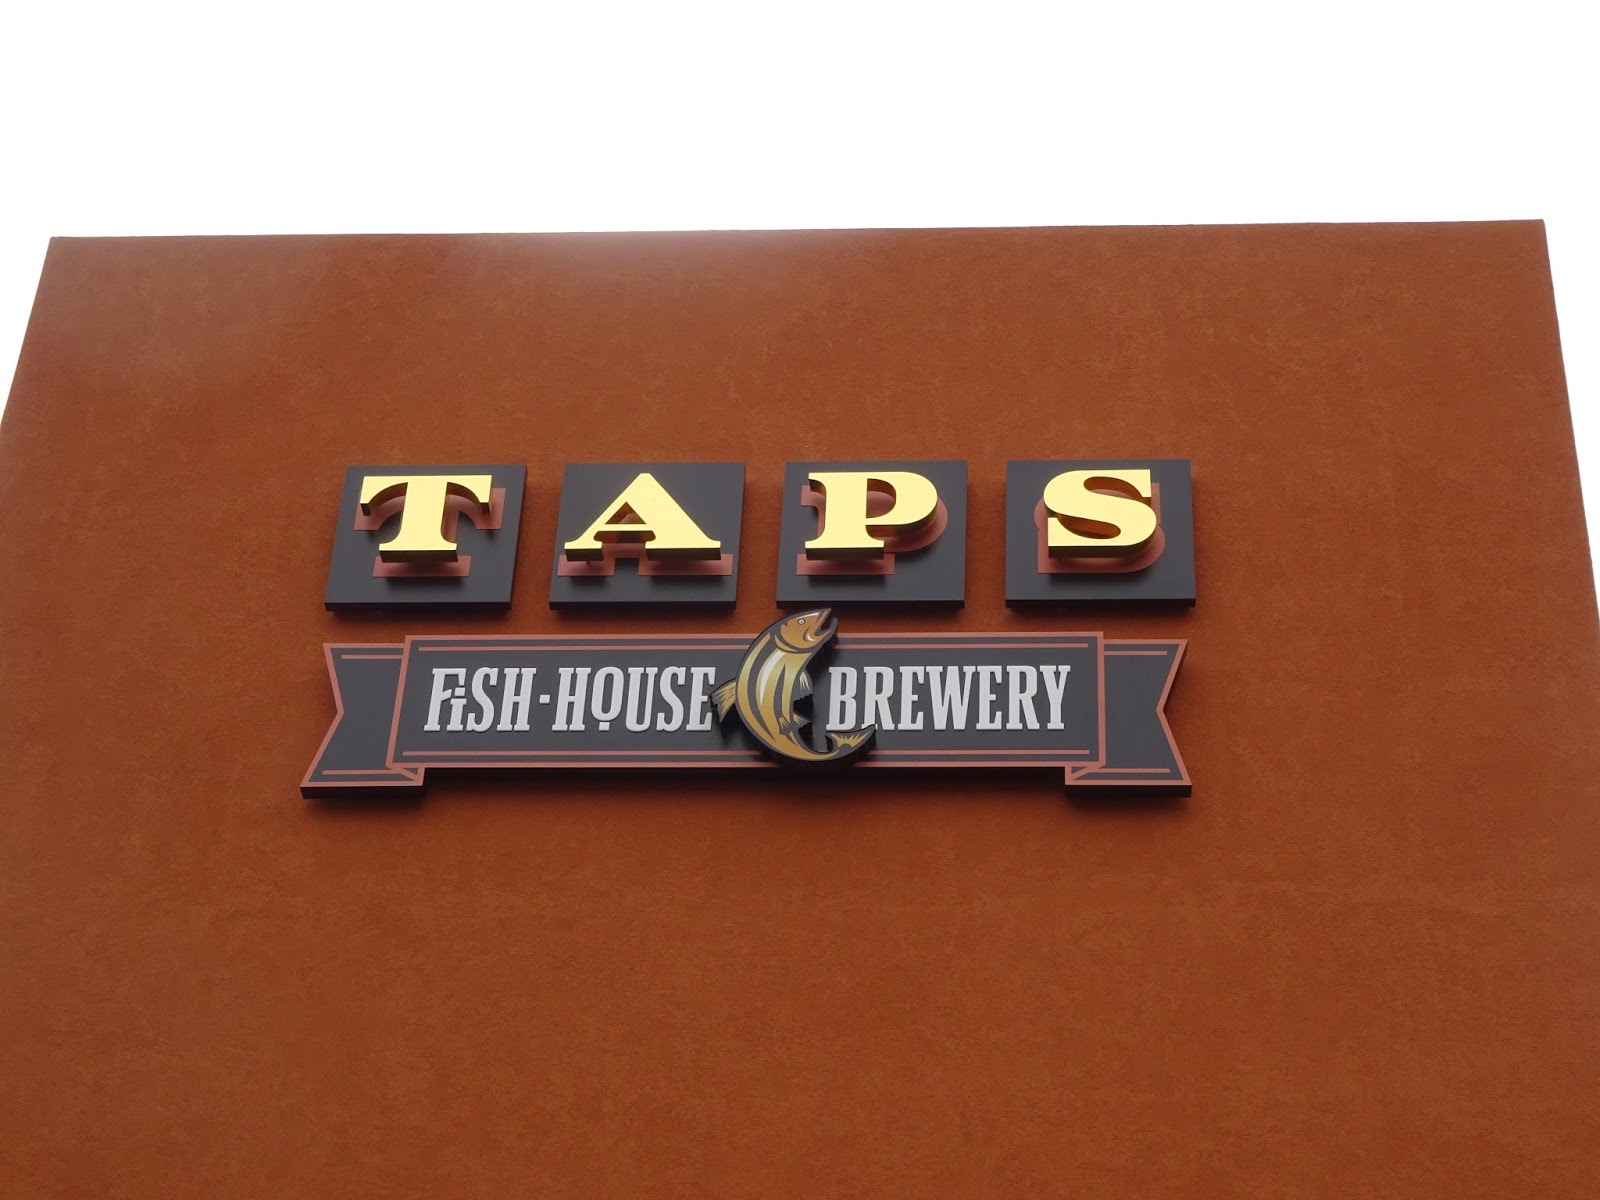 Eating my way through oc taps opens in irvine Taps fish house irvine